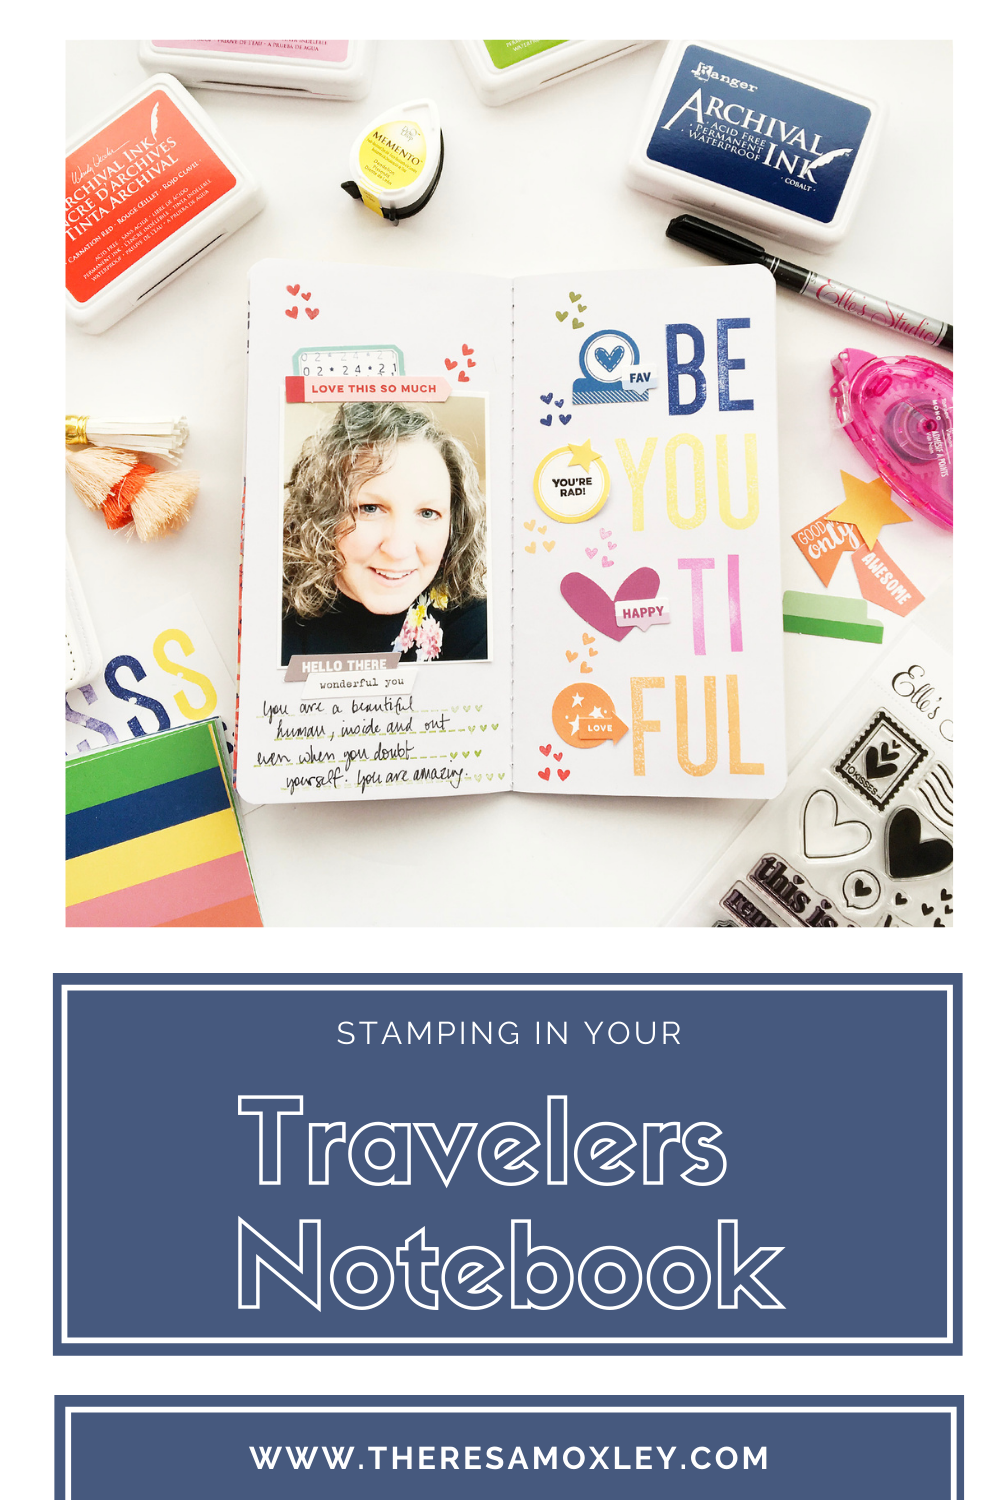 Theresa Moxley Travelers Notebook Layout | BeYouTiFul ft Elles Studio